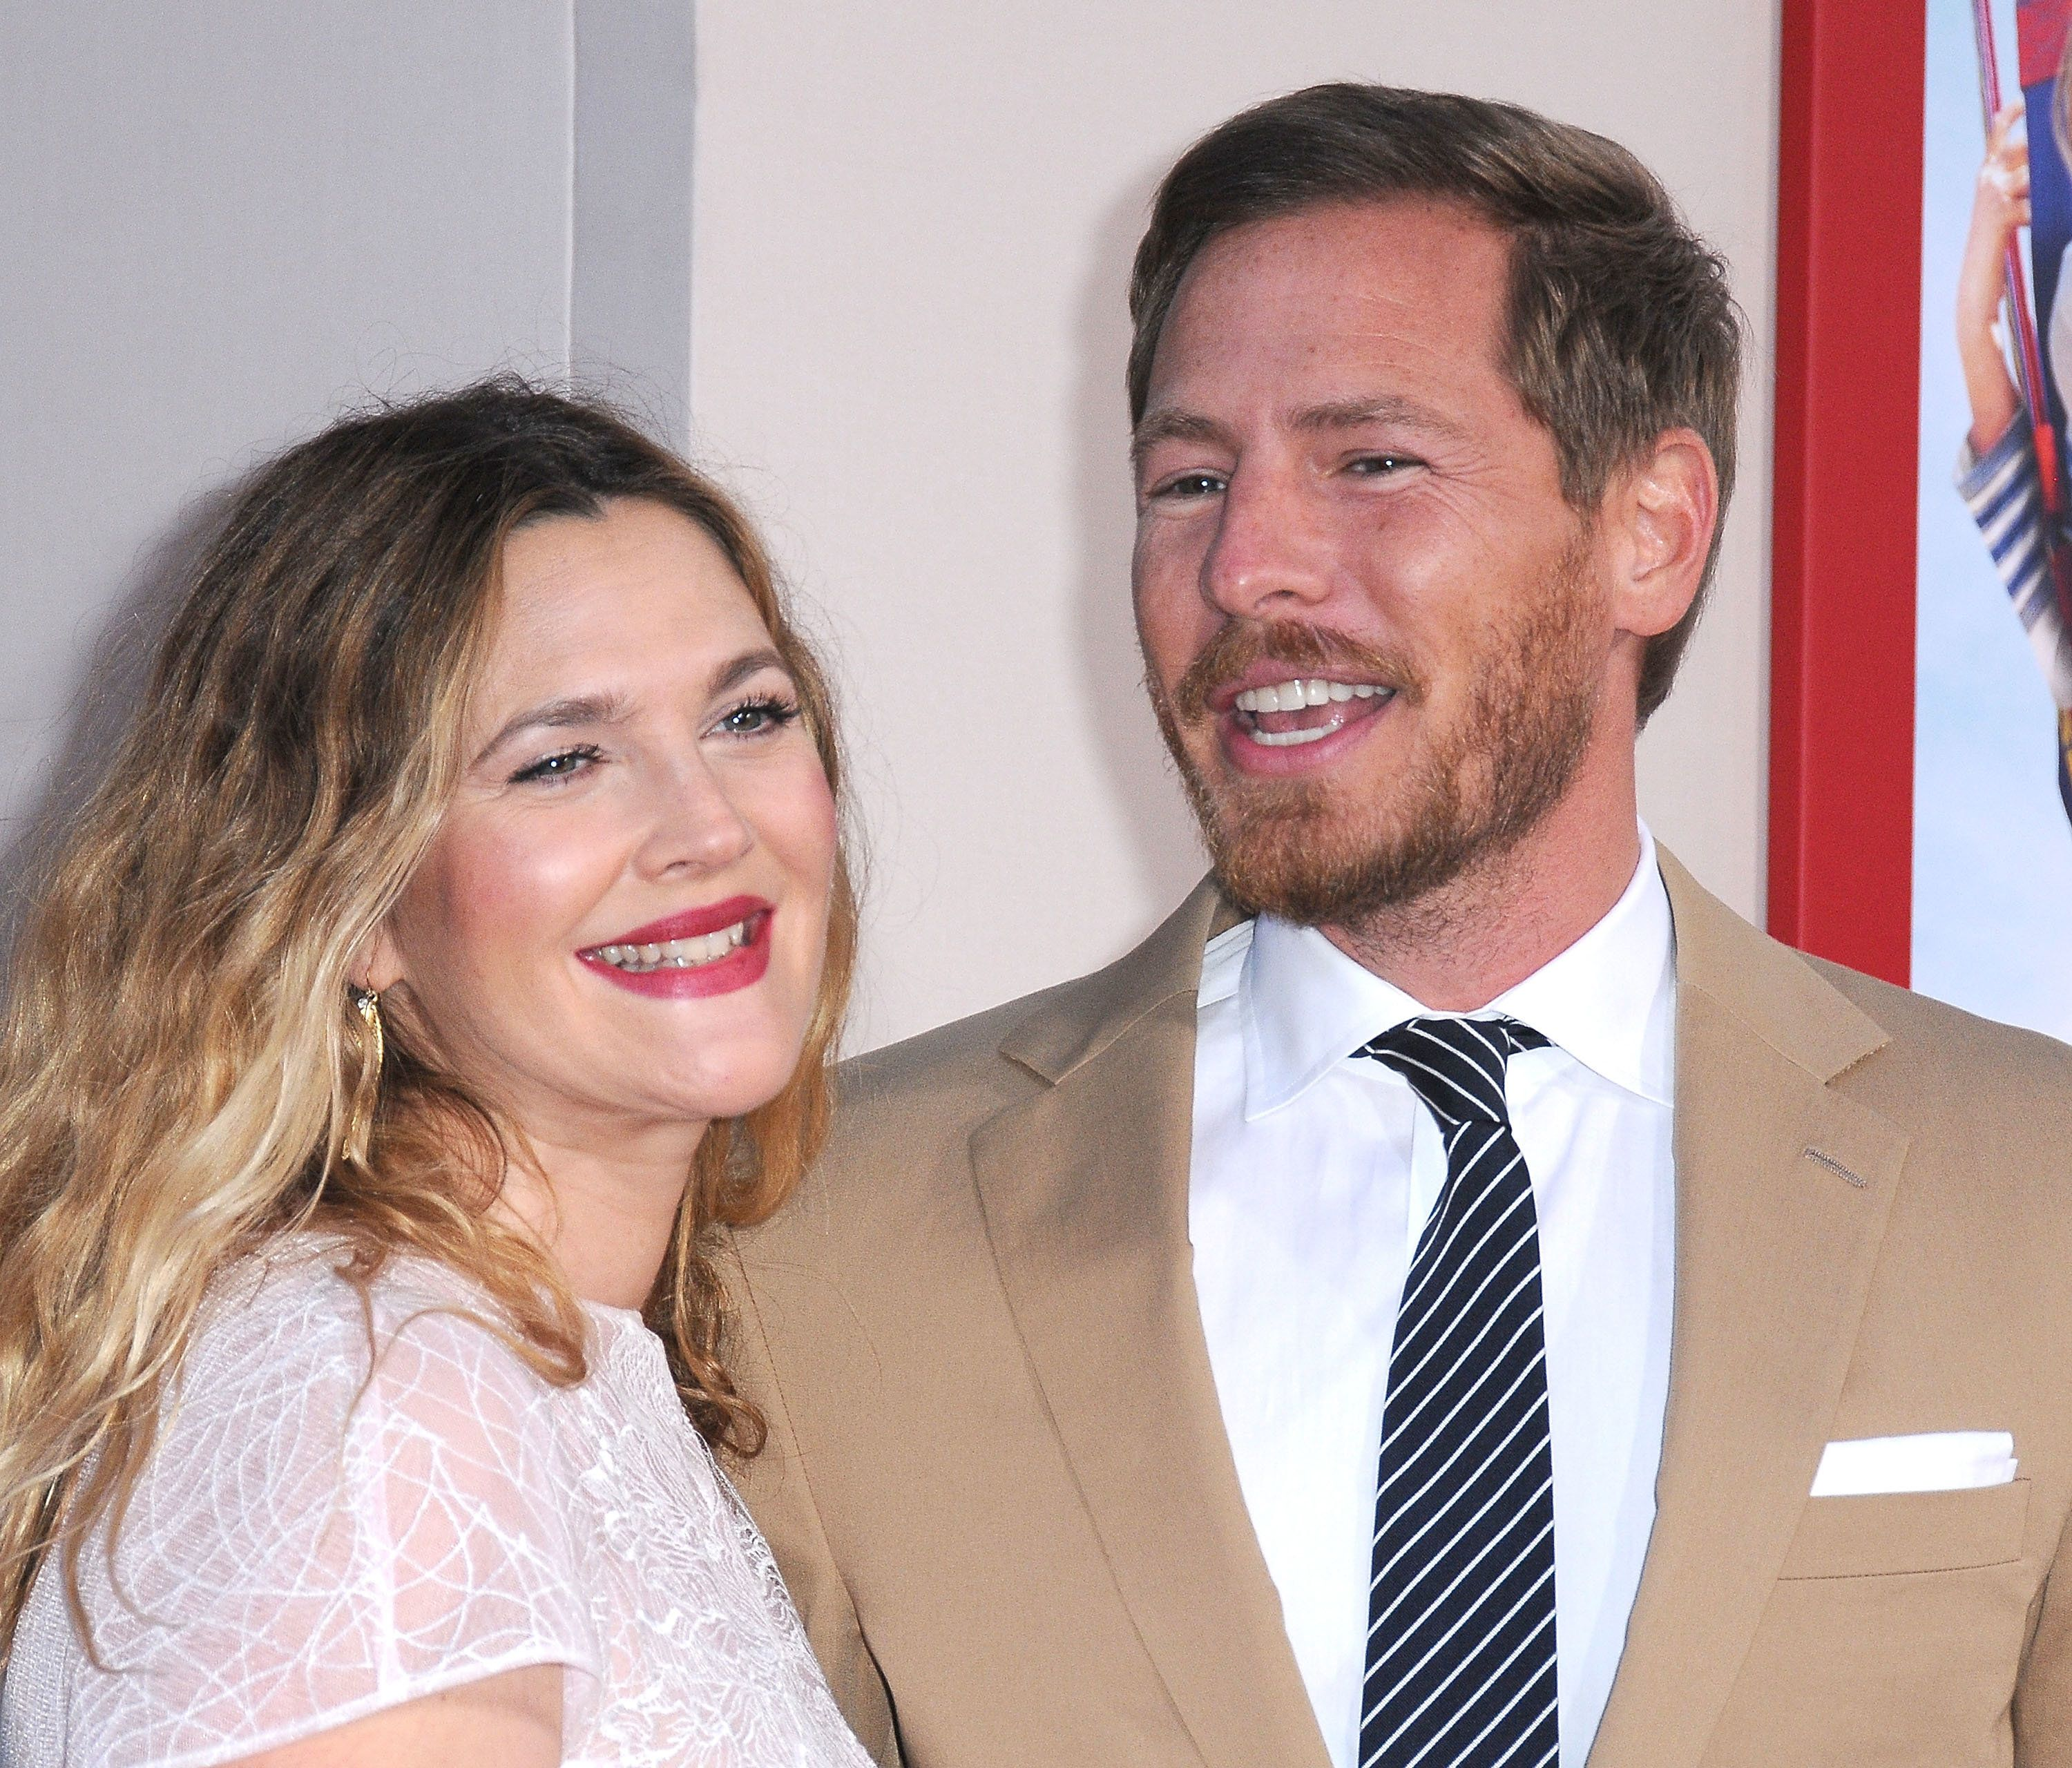 HOLLYWOOD, CA - MAY 21:  Actress Drew Barrymore (L) and husband Will Kopelman arrive at the Los Angeles Premiere 'Blended' on May 21, 2014 at TCL Chinese Theatre in Hollywood, California.  (Photo by Barry King/FilmMagic)